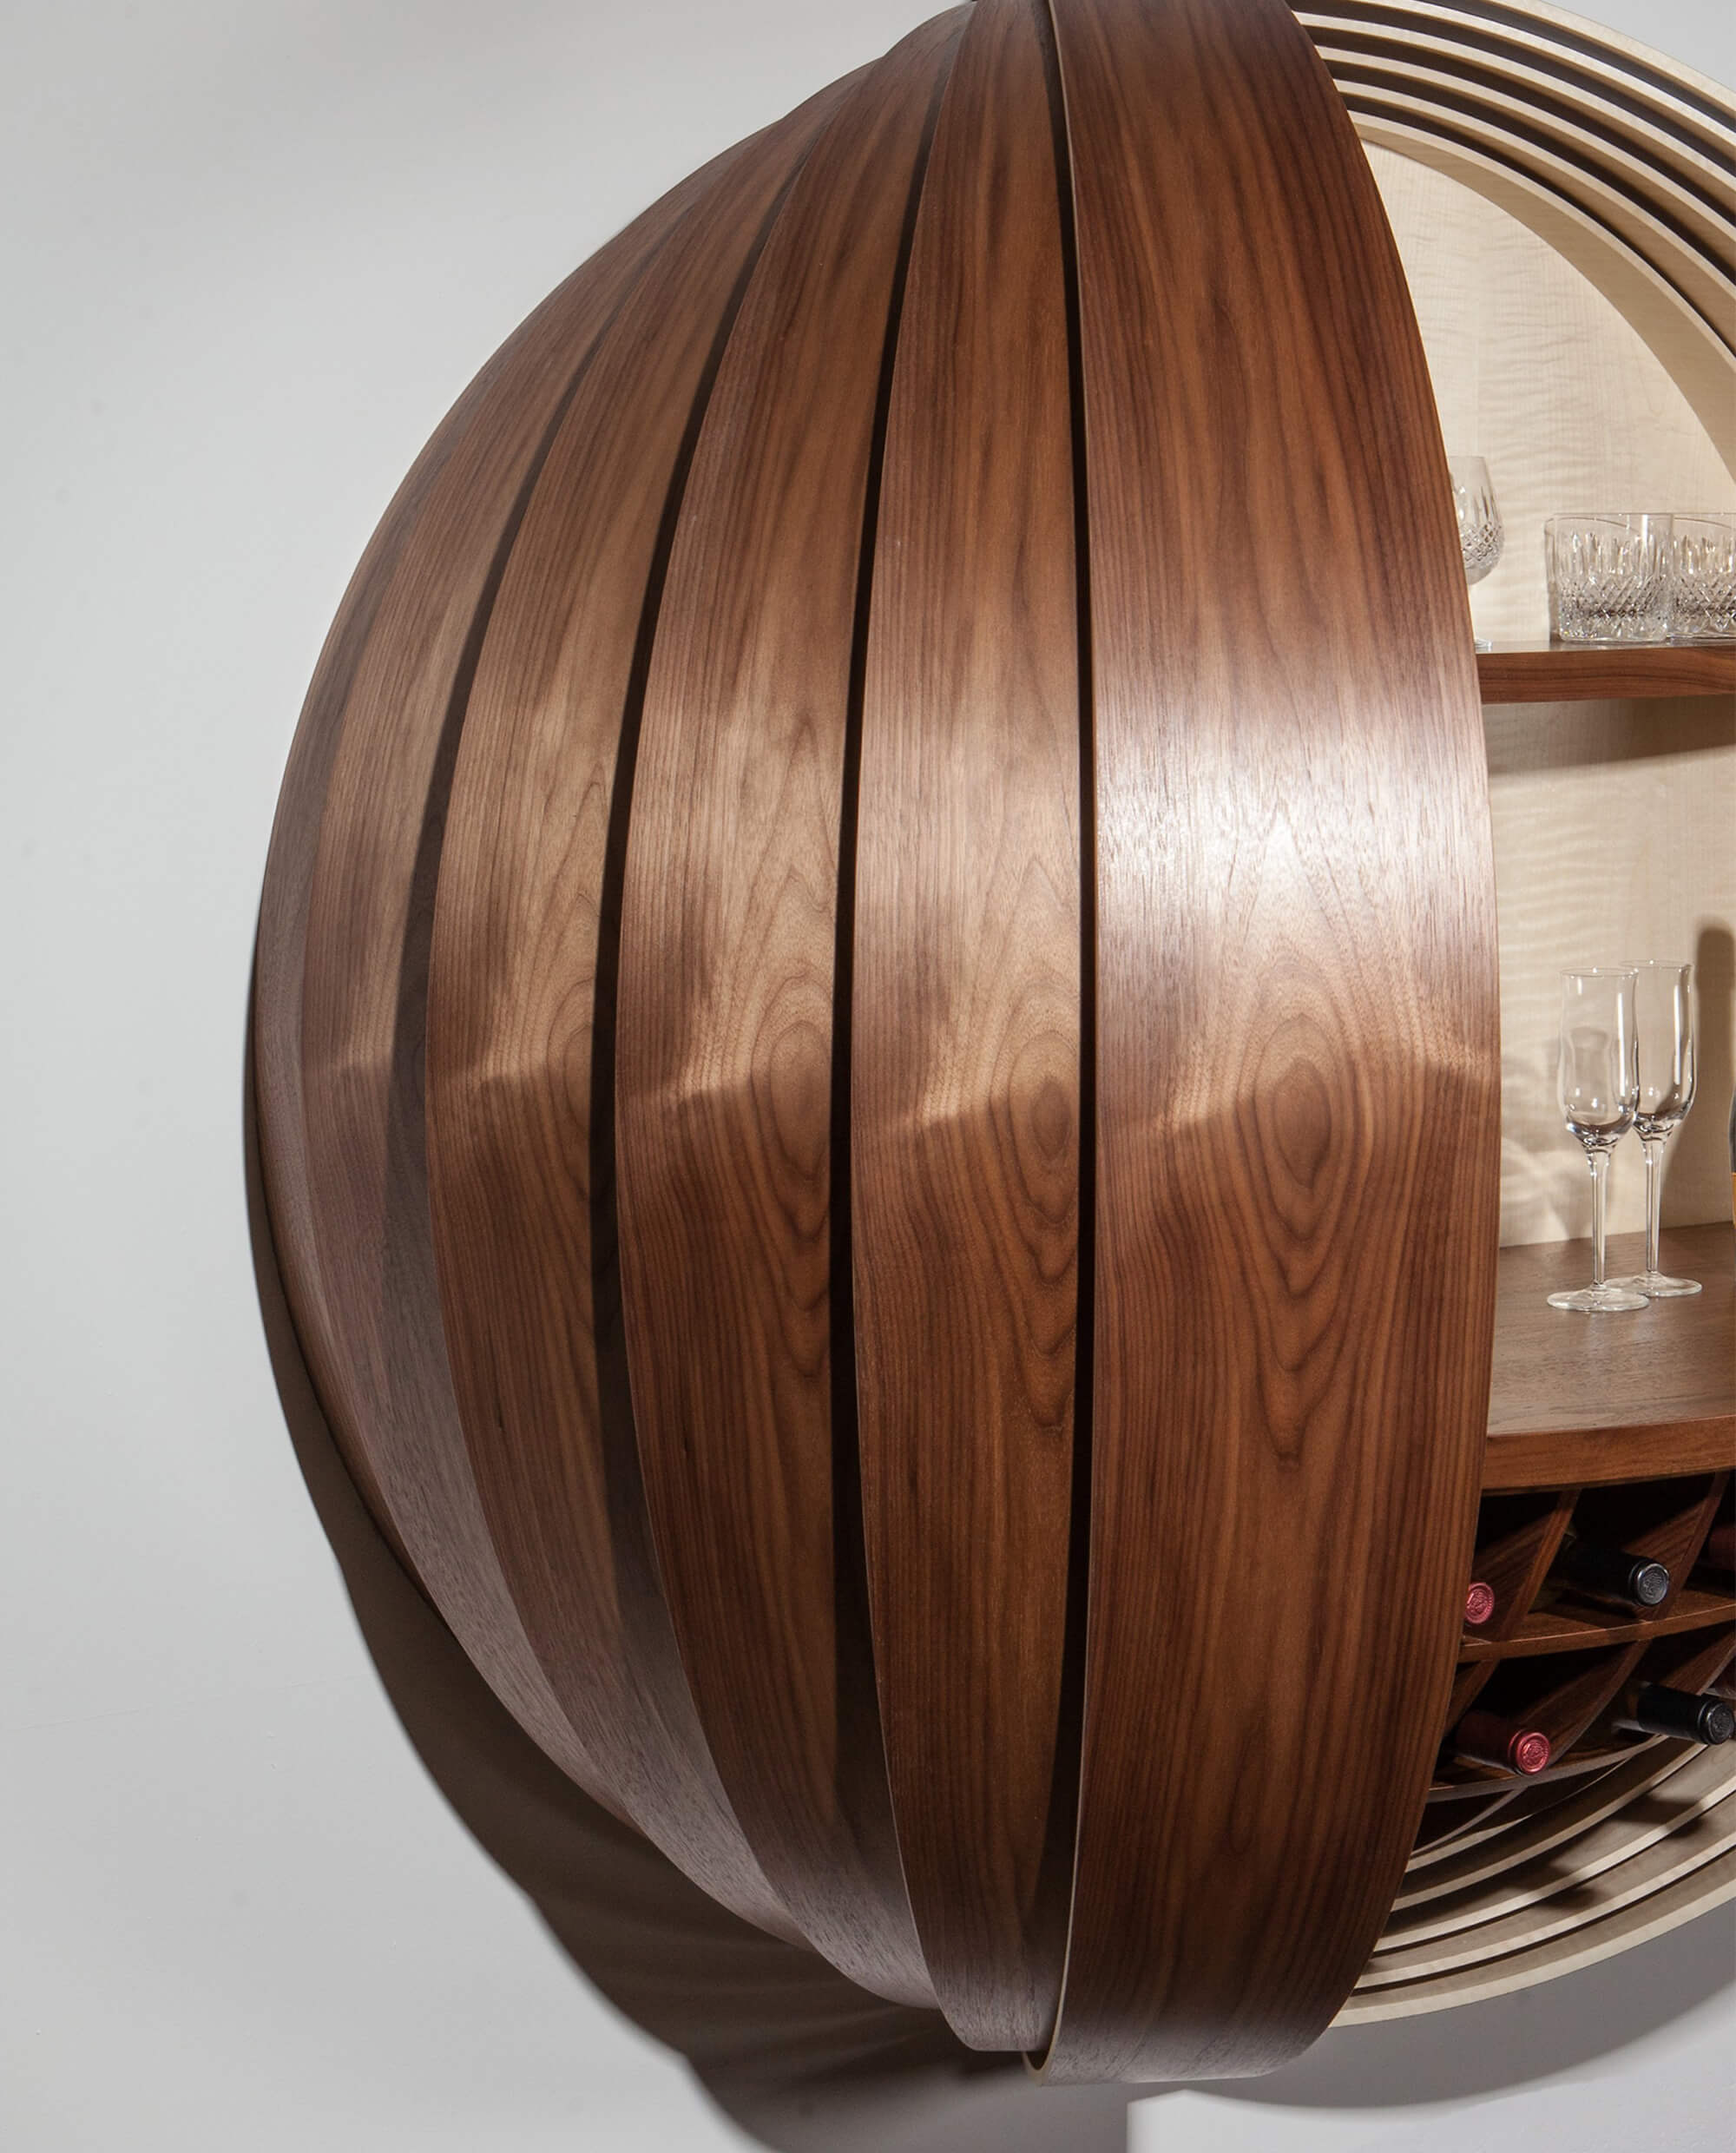 Spherical wall-mounted liquor cabinet with walnut finish.